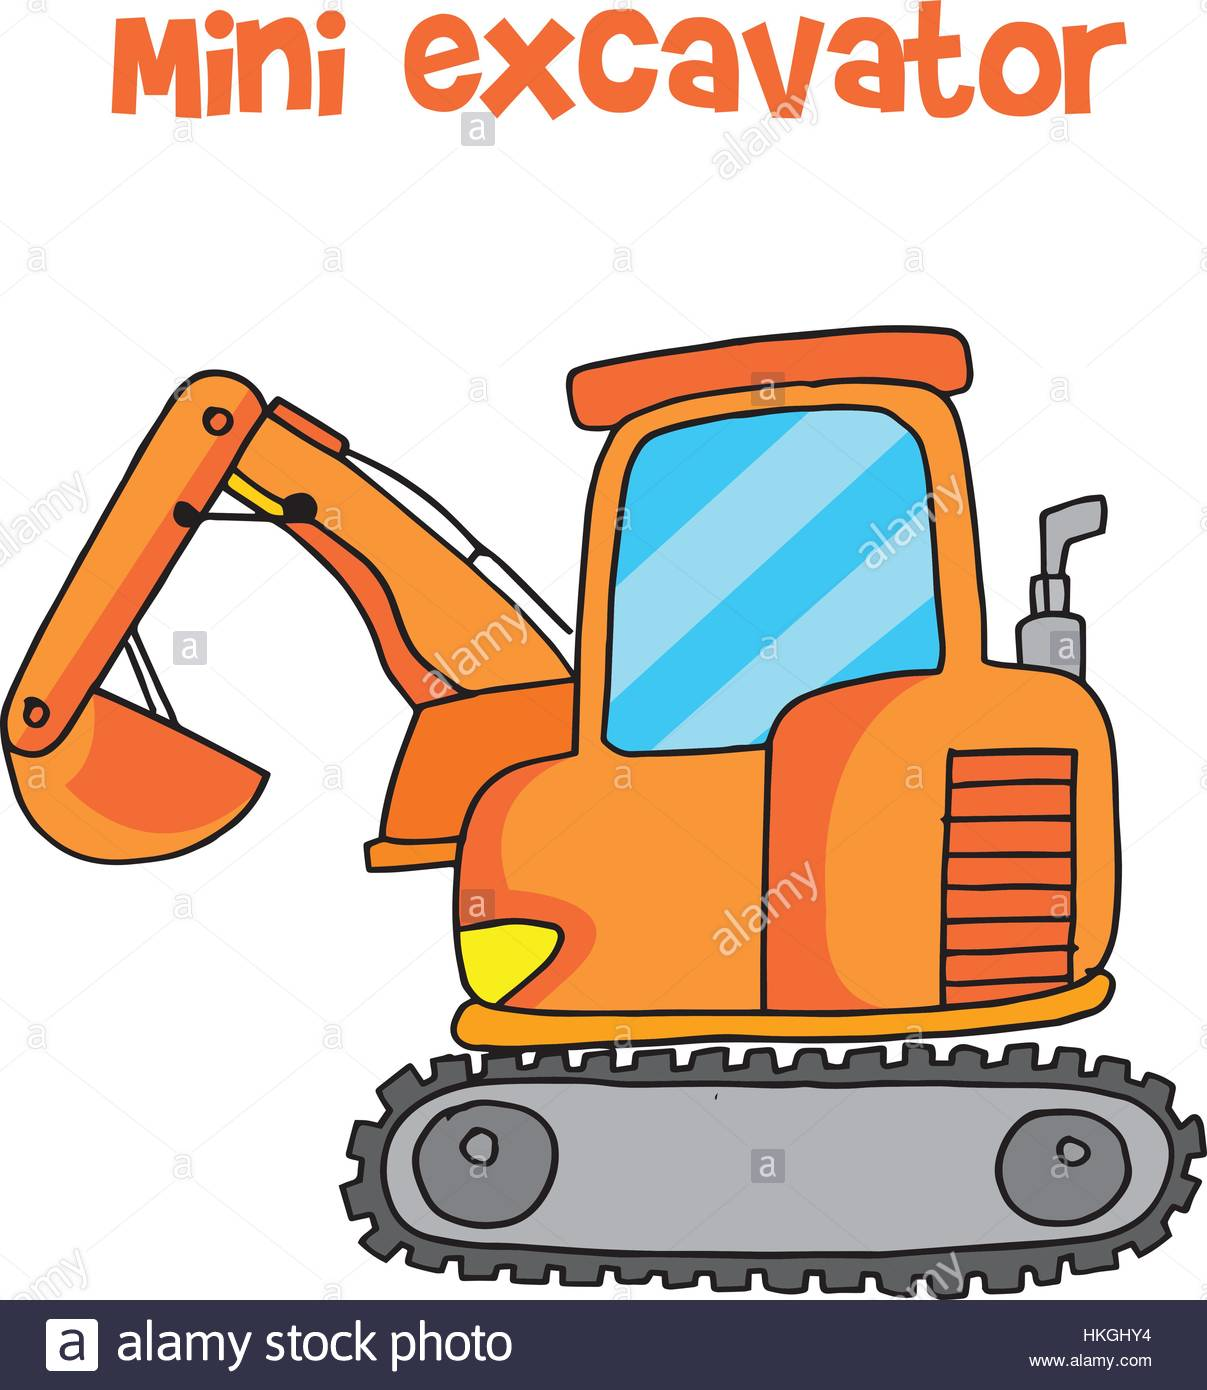 Backhoe clipart mini digger. Excavator stock vector images svg library stock